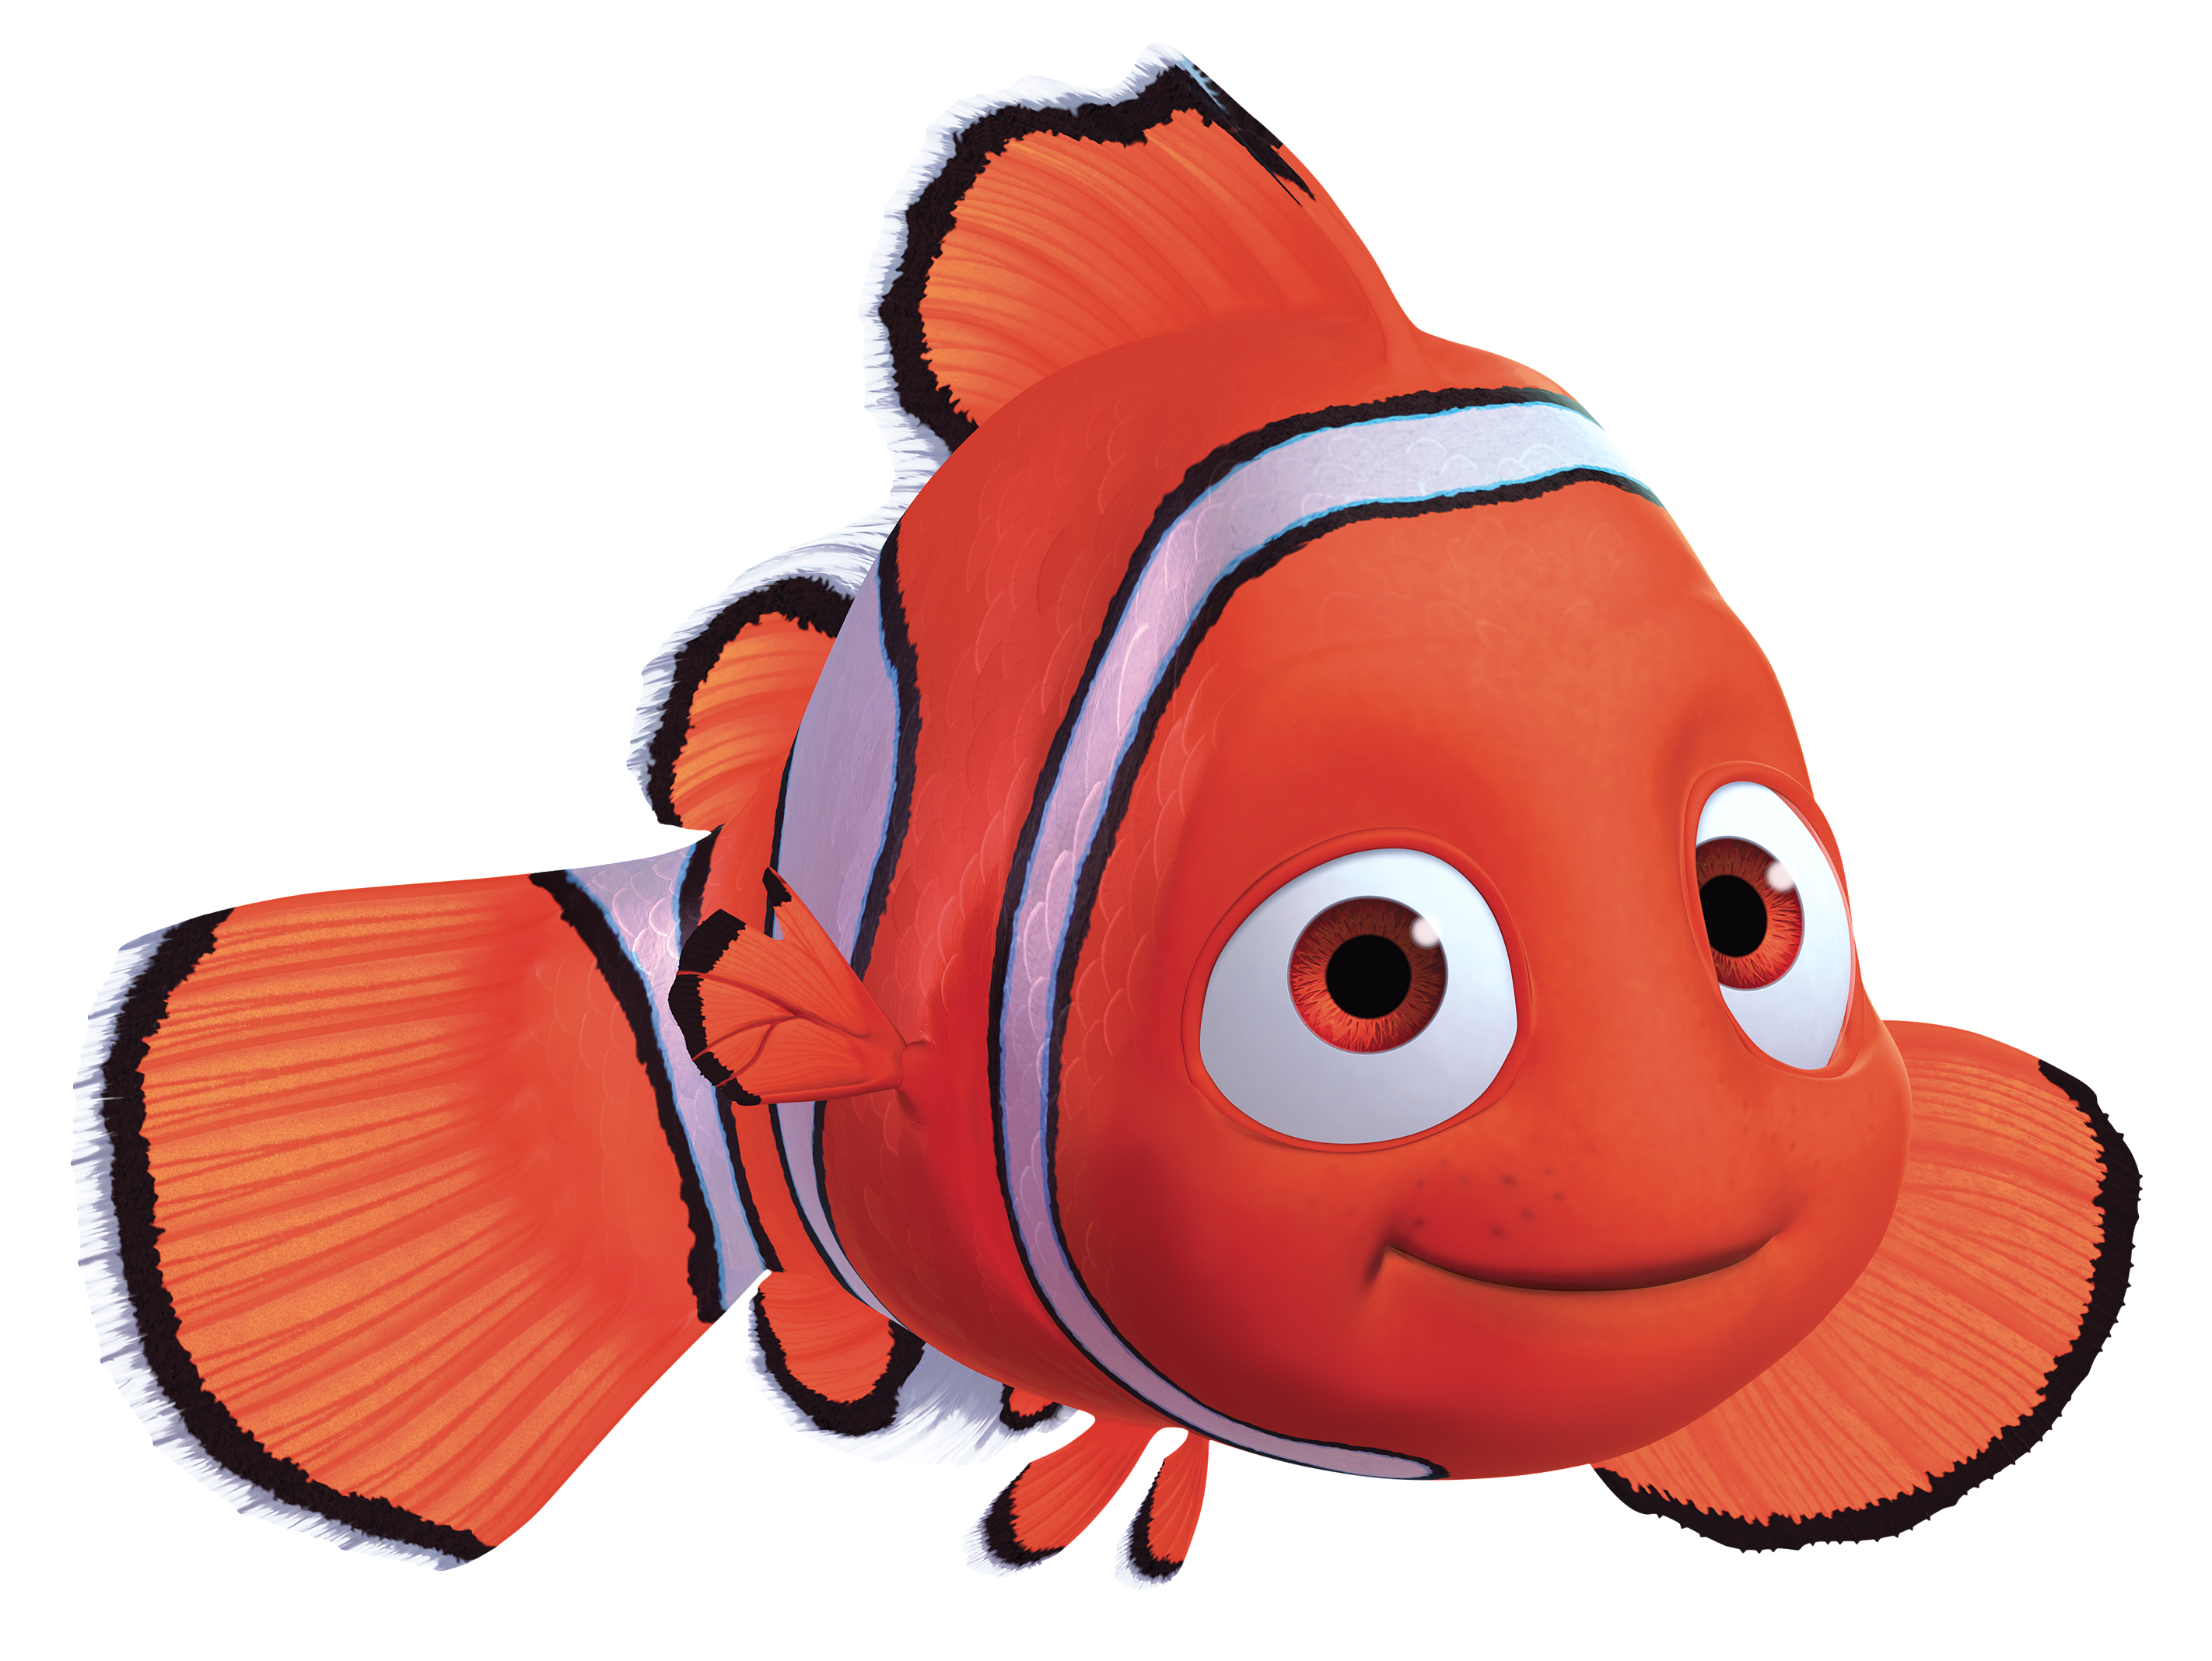 http://www.cartoonpics.net/data/media/41/nemo_fish.png